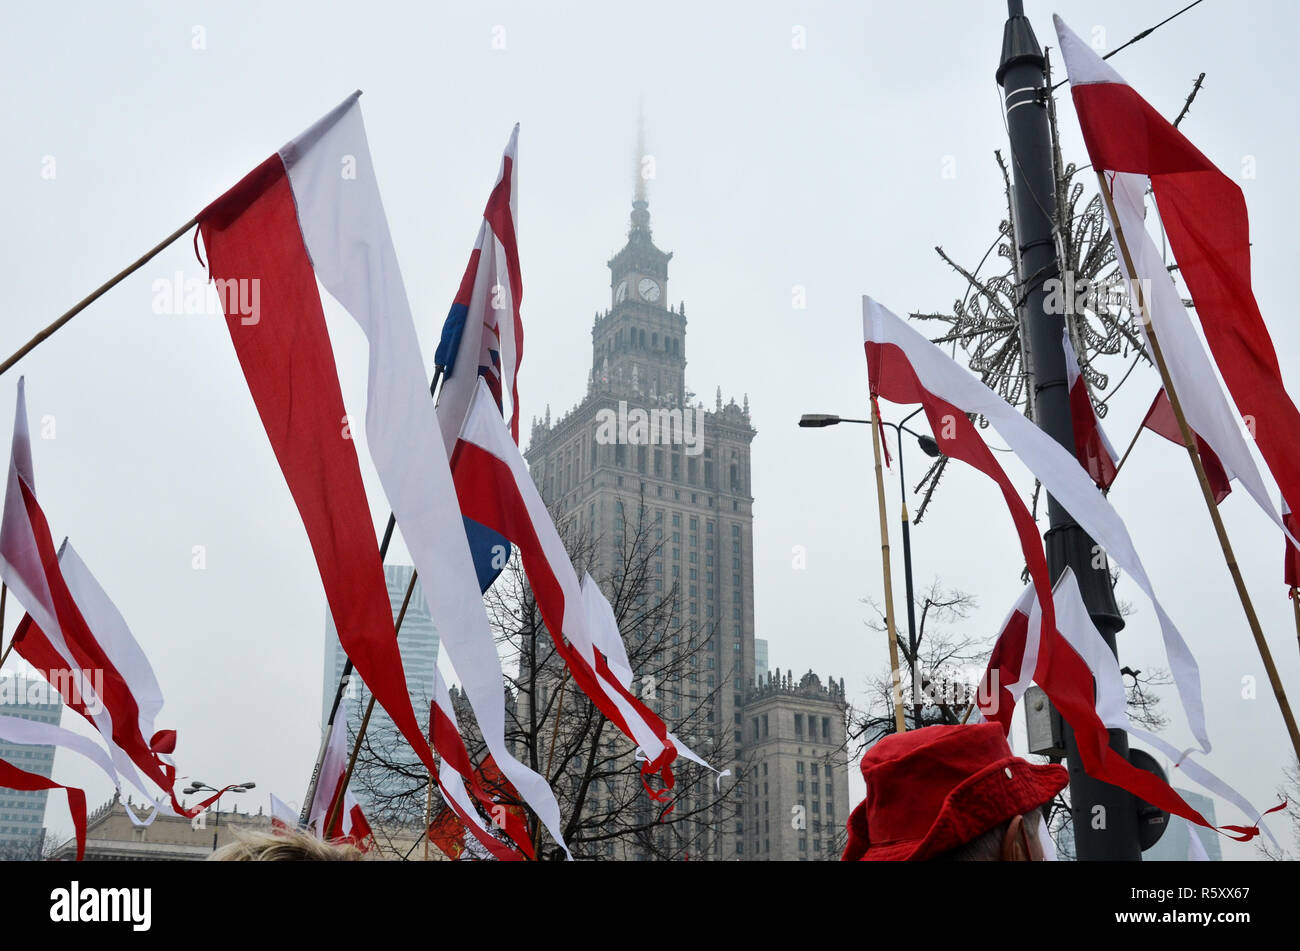 Polish flags in front of the Palace of Culture and Science, National Independence Day march, 100 year anniversary, Warsaw, 11 November, Poland, 2018 - Stock Image